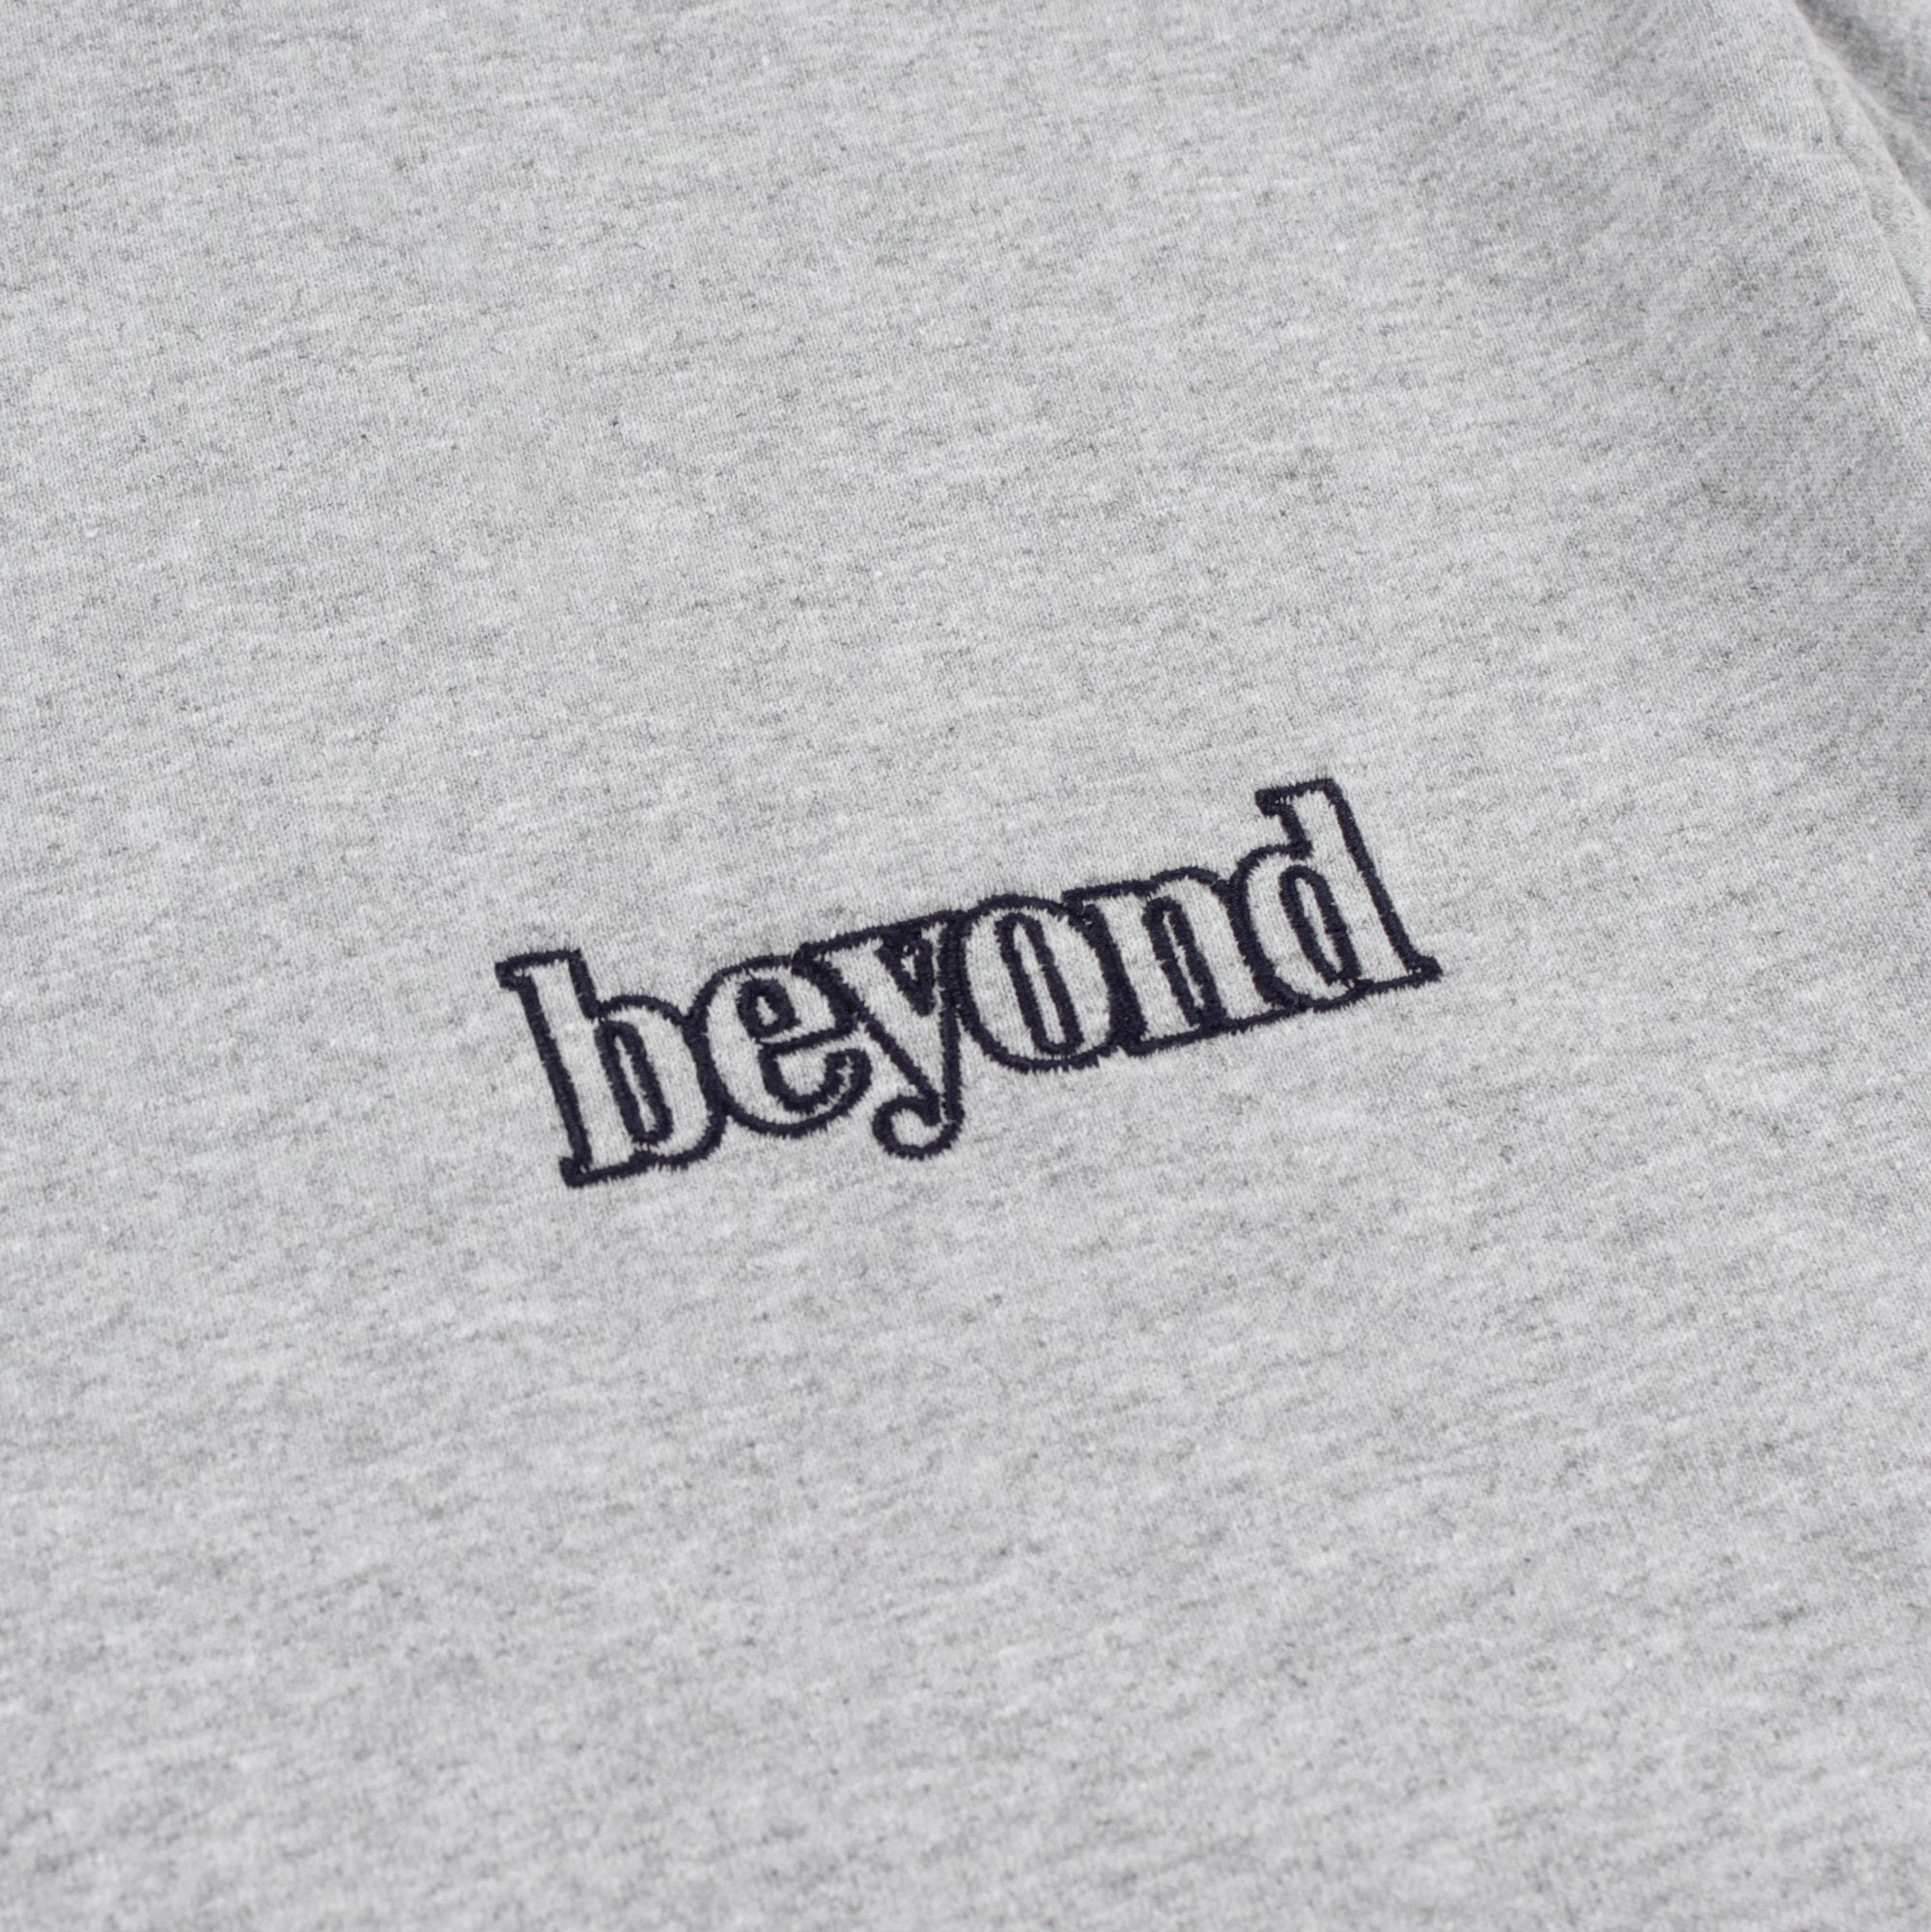 Beyond Full Flavour Tee Product Photo #2